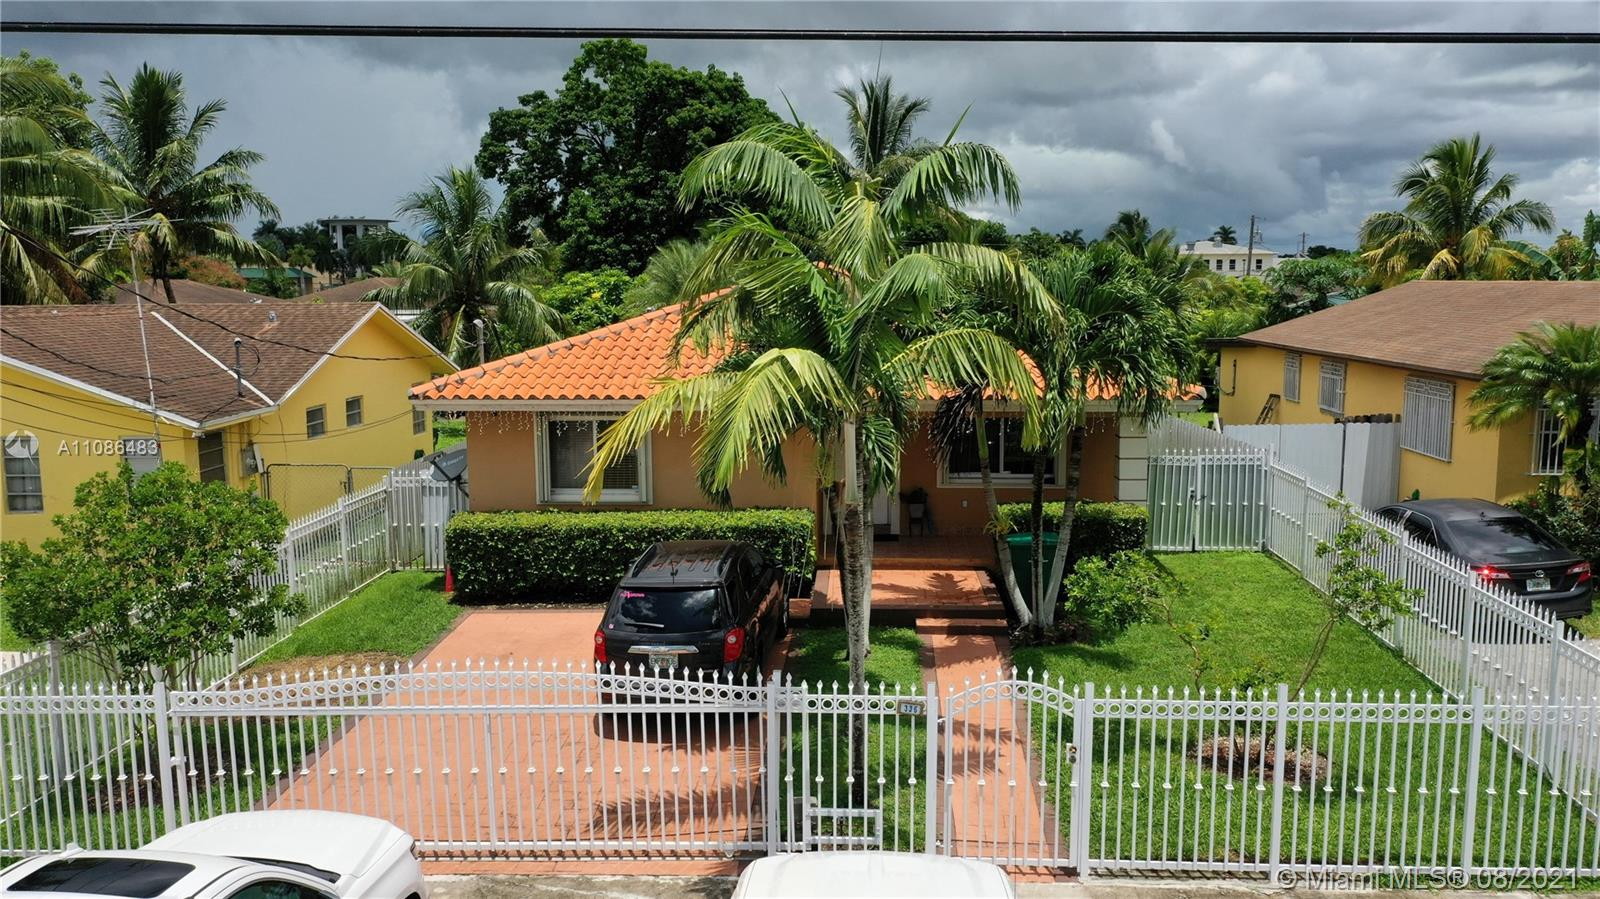 Beautiful Single Family Home 3 bed 2 bathroom, near the exit to the keys Fl  large patio , granite Counter Tops , No HOA , NO CDD , Ready to move in December 2021